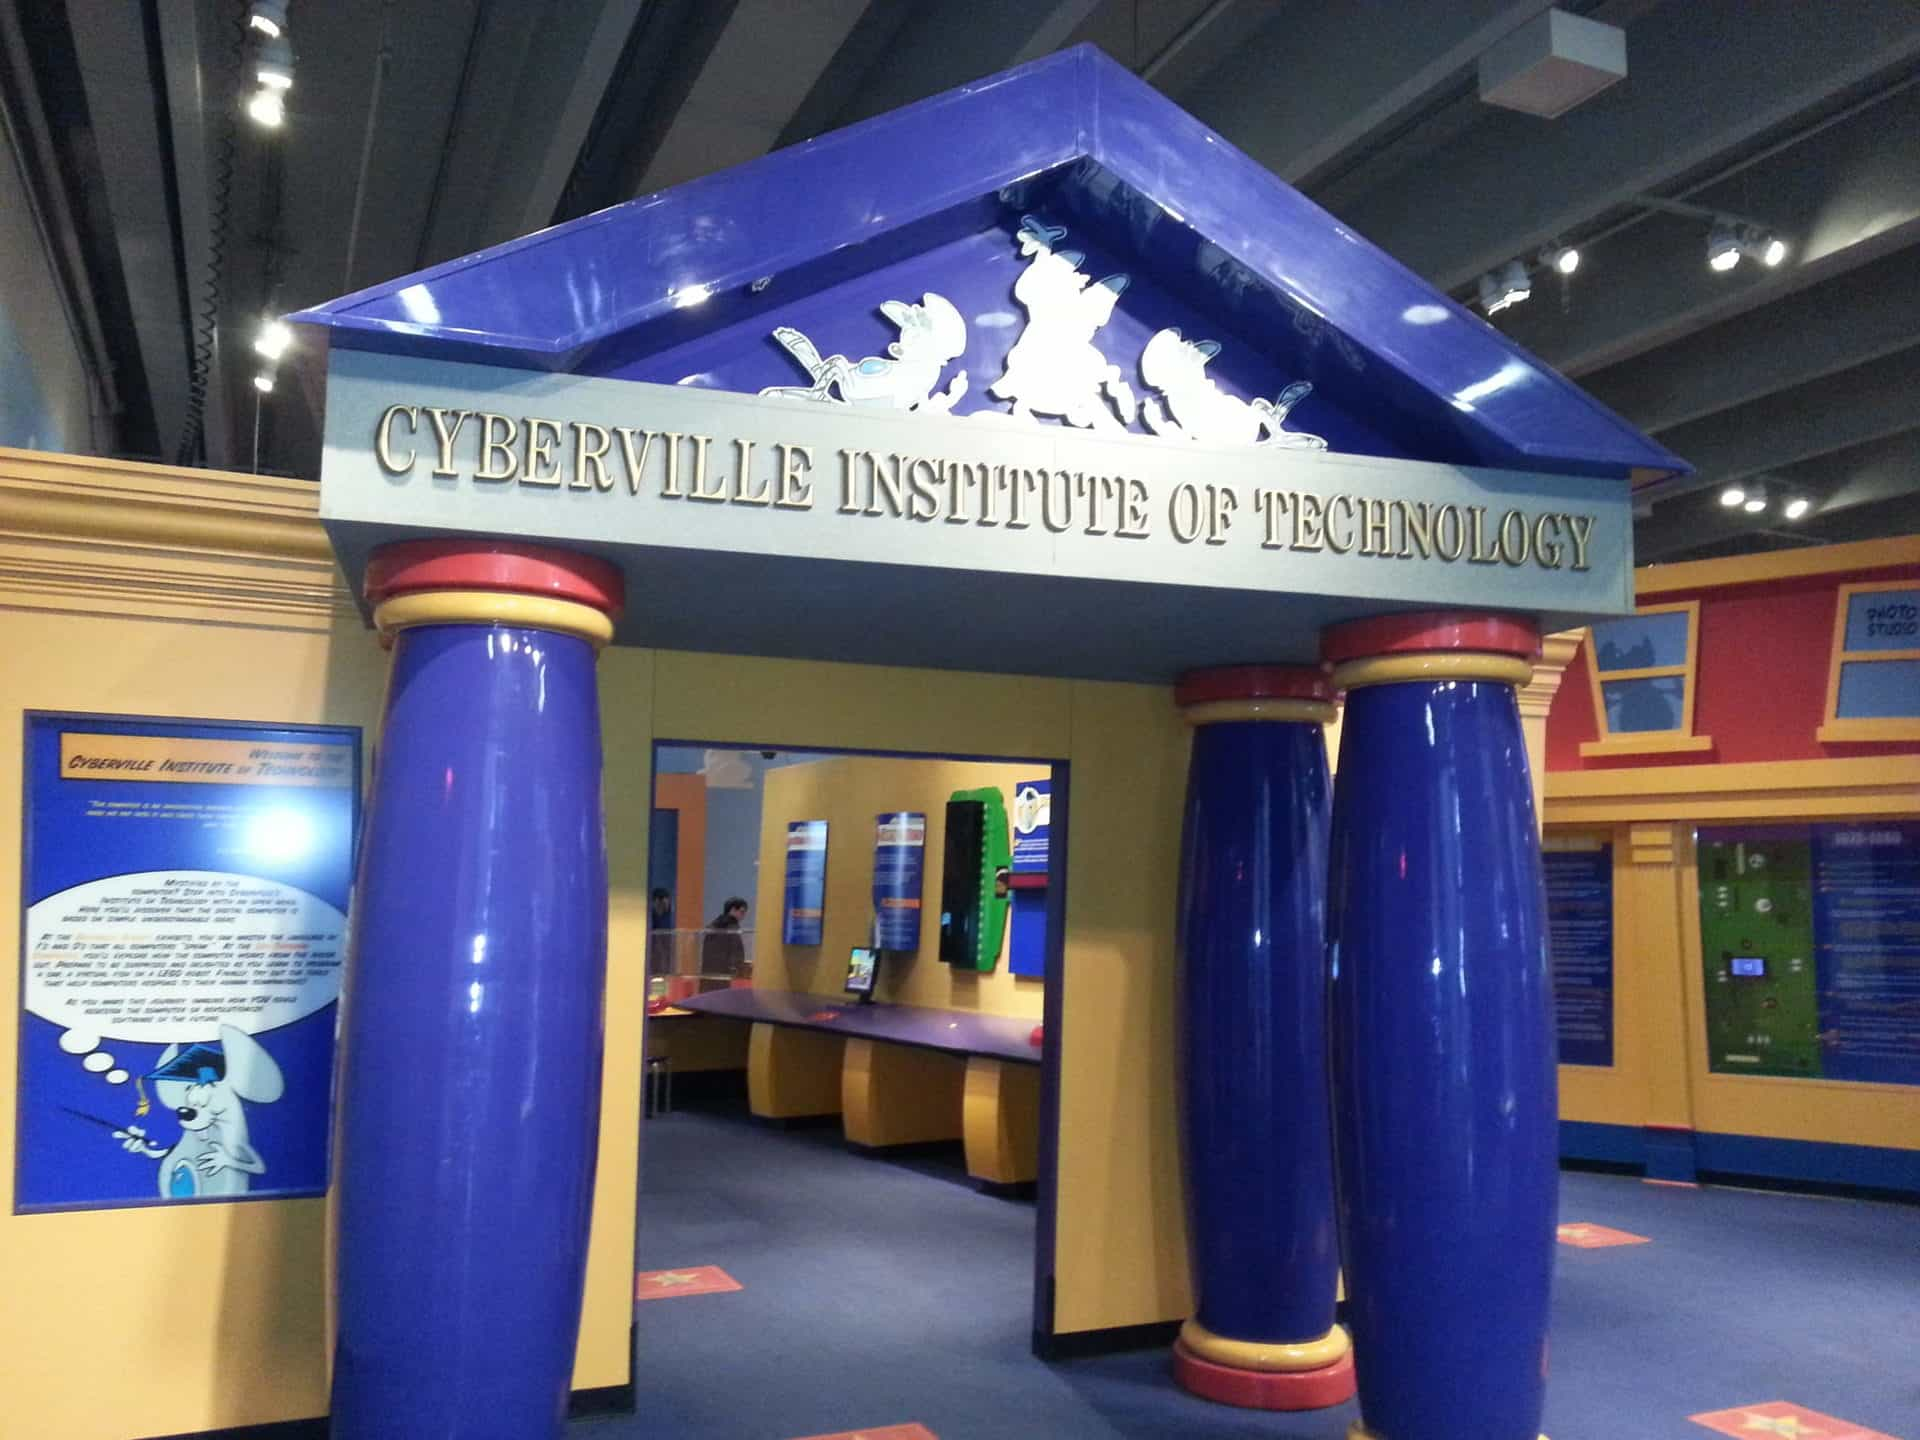 St Louis Science Center - Cyberville